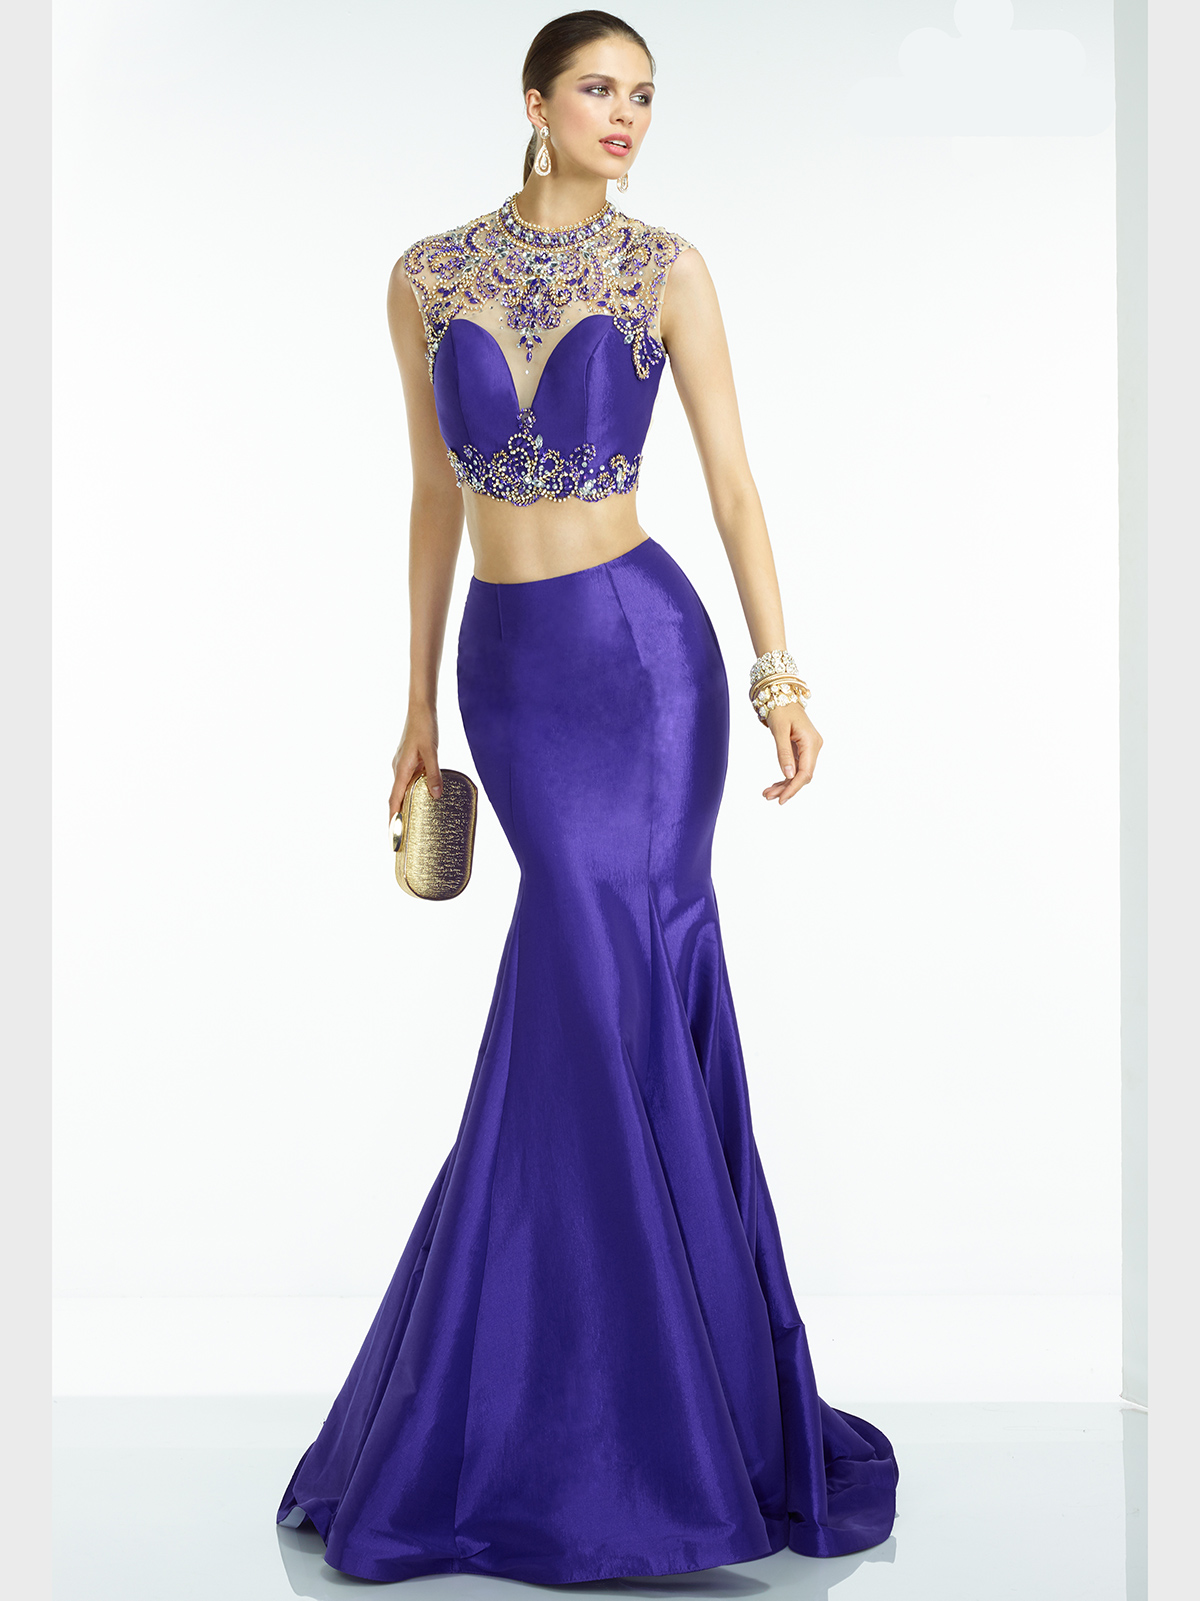 Casino themed prom dresses - Best Dressed